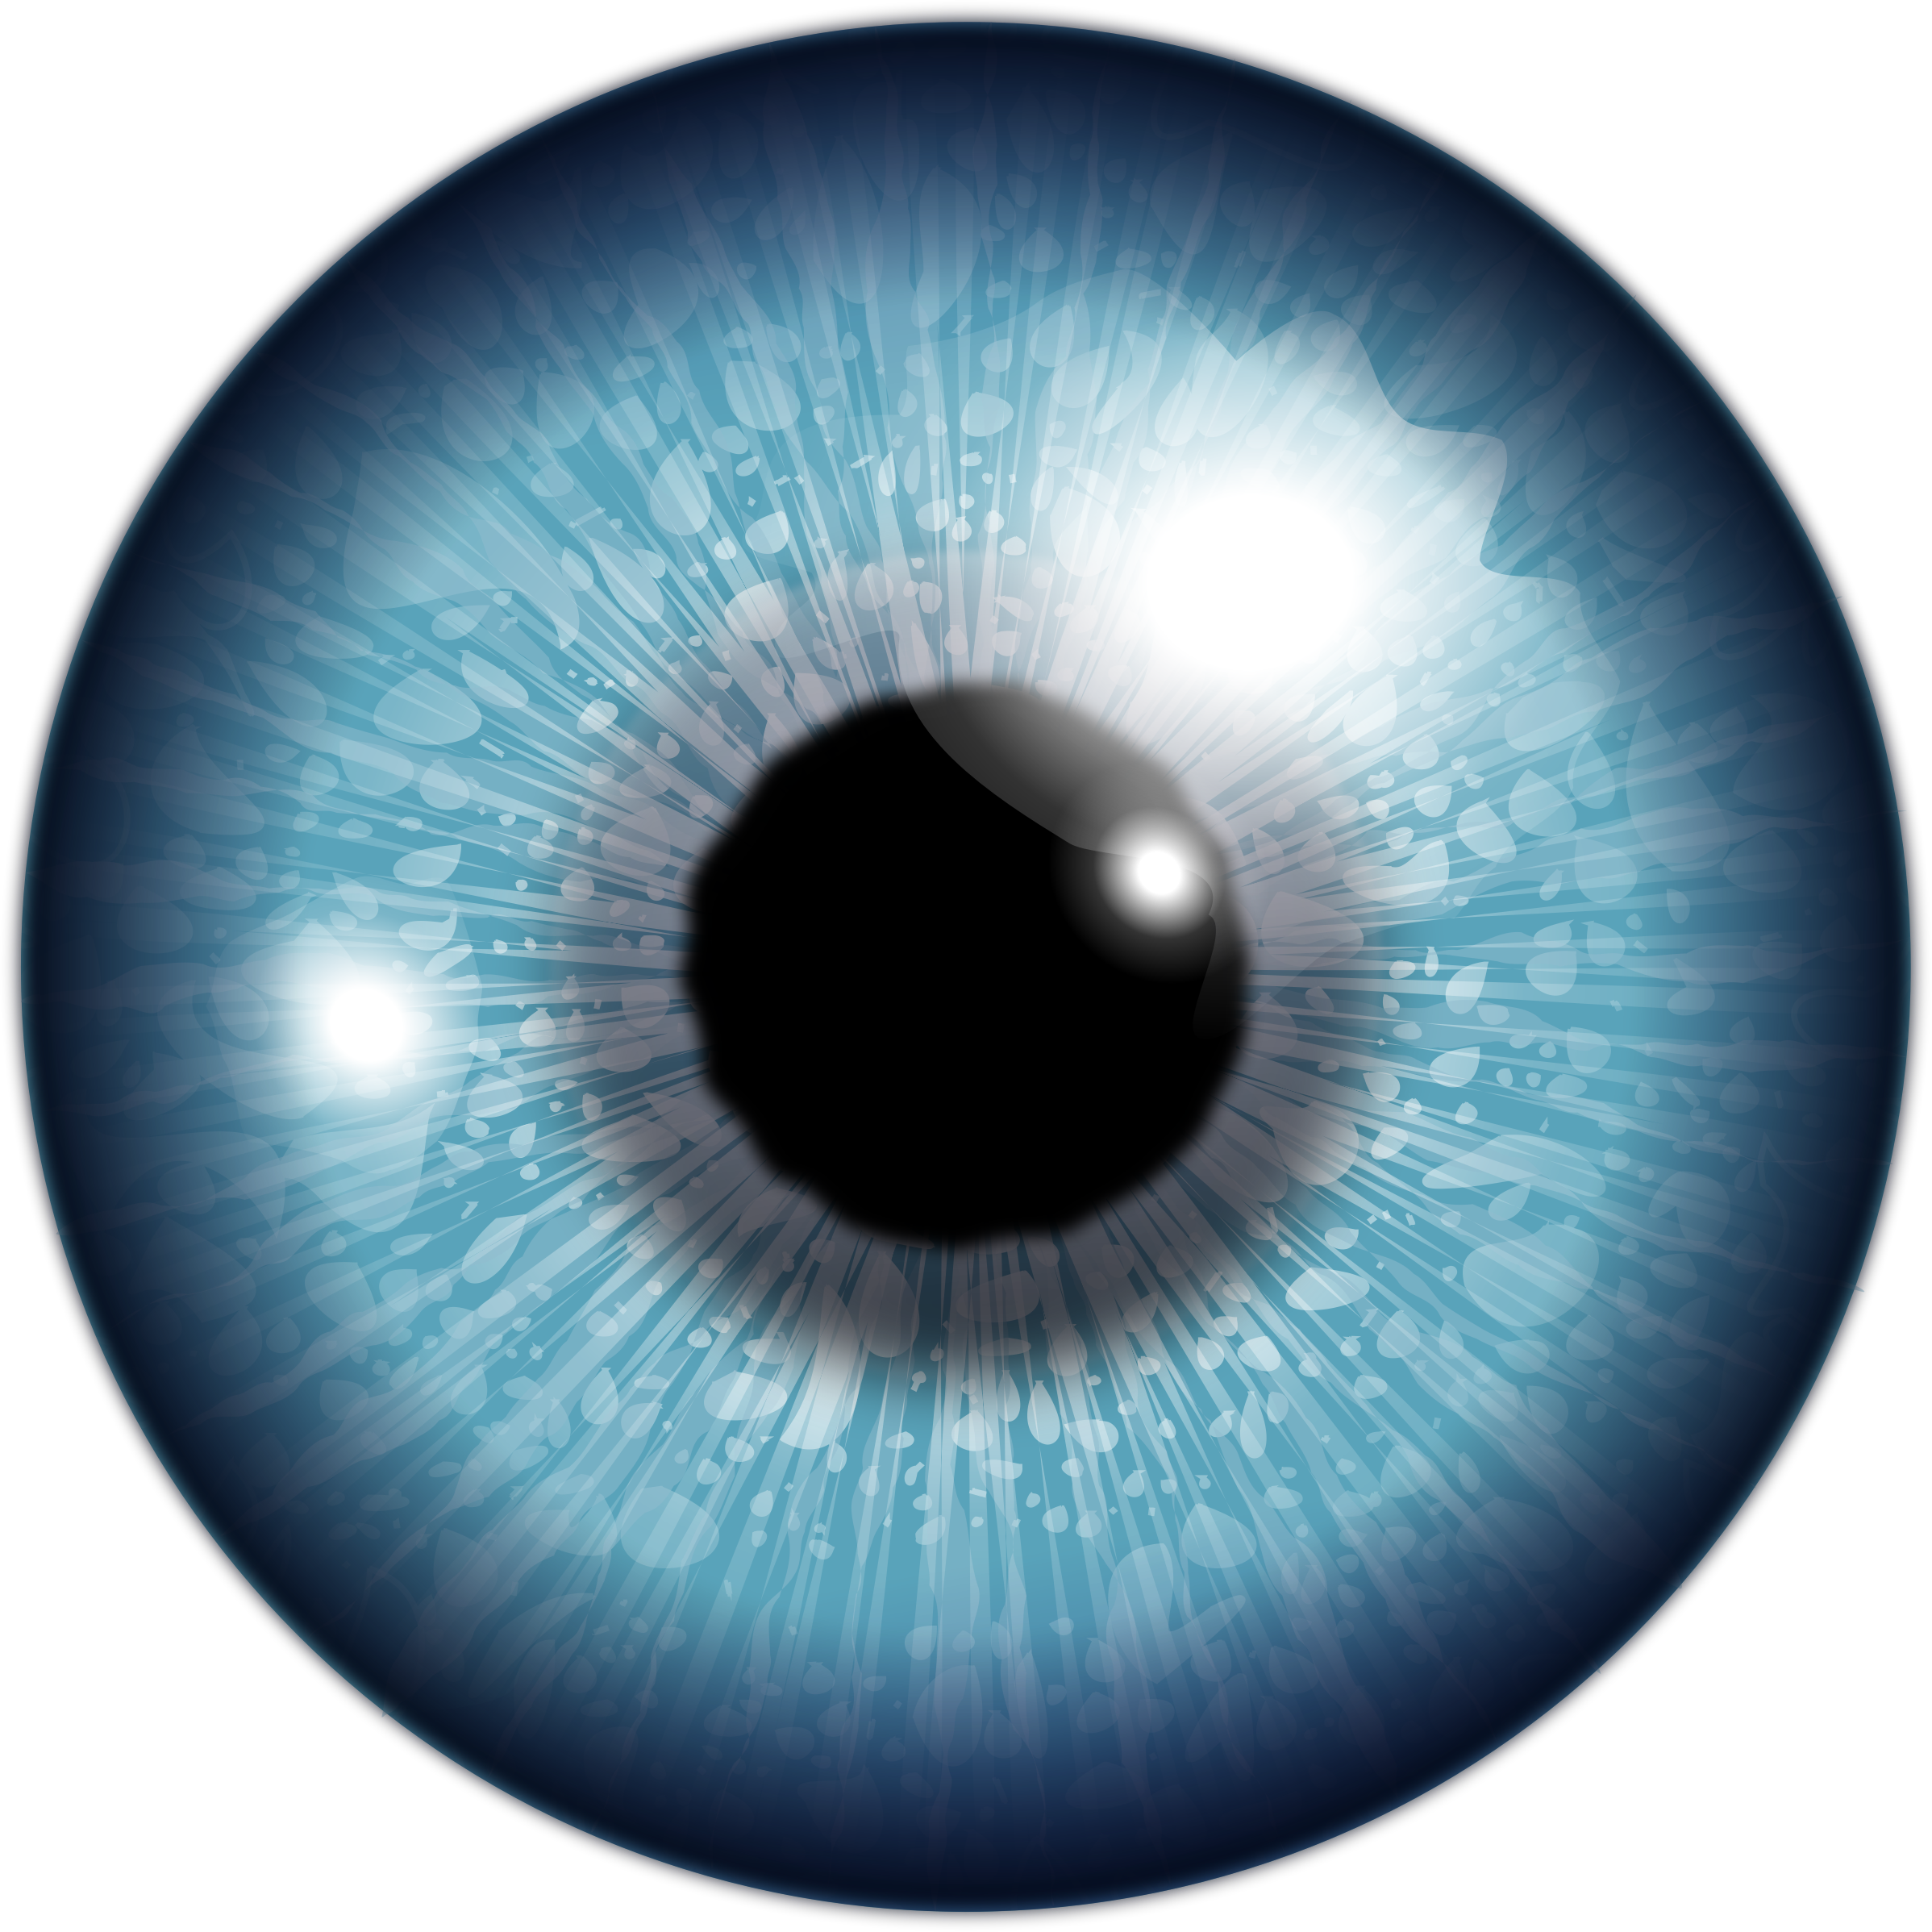 Eyeball png. Eyes image purepng free